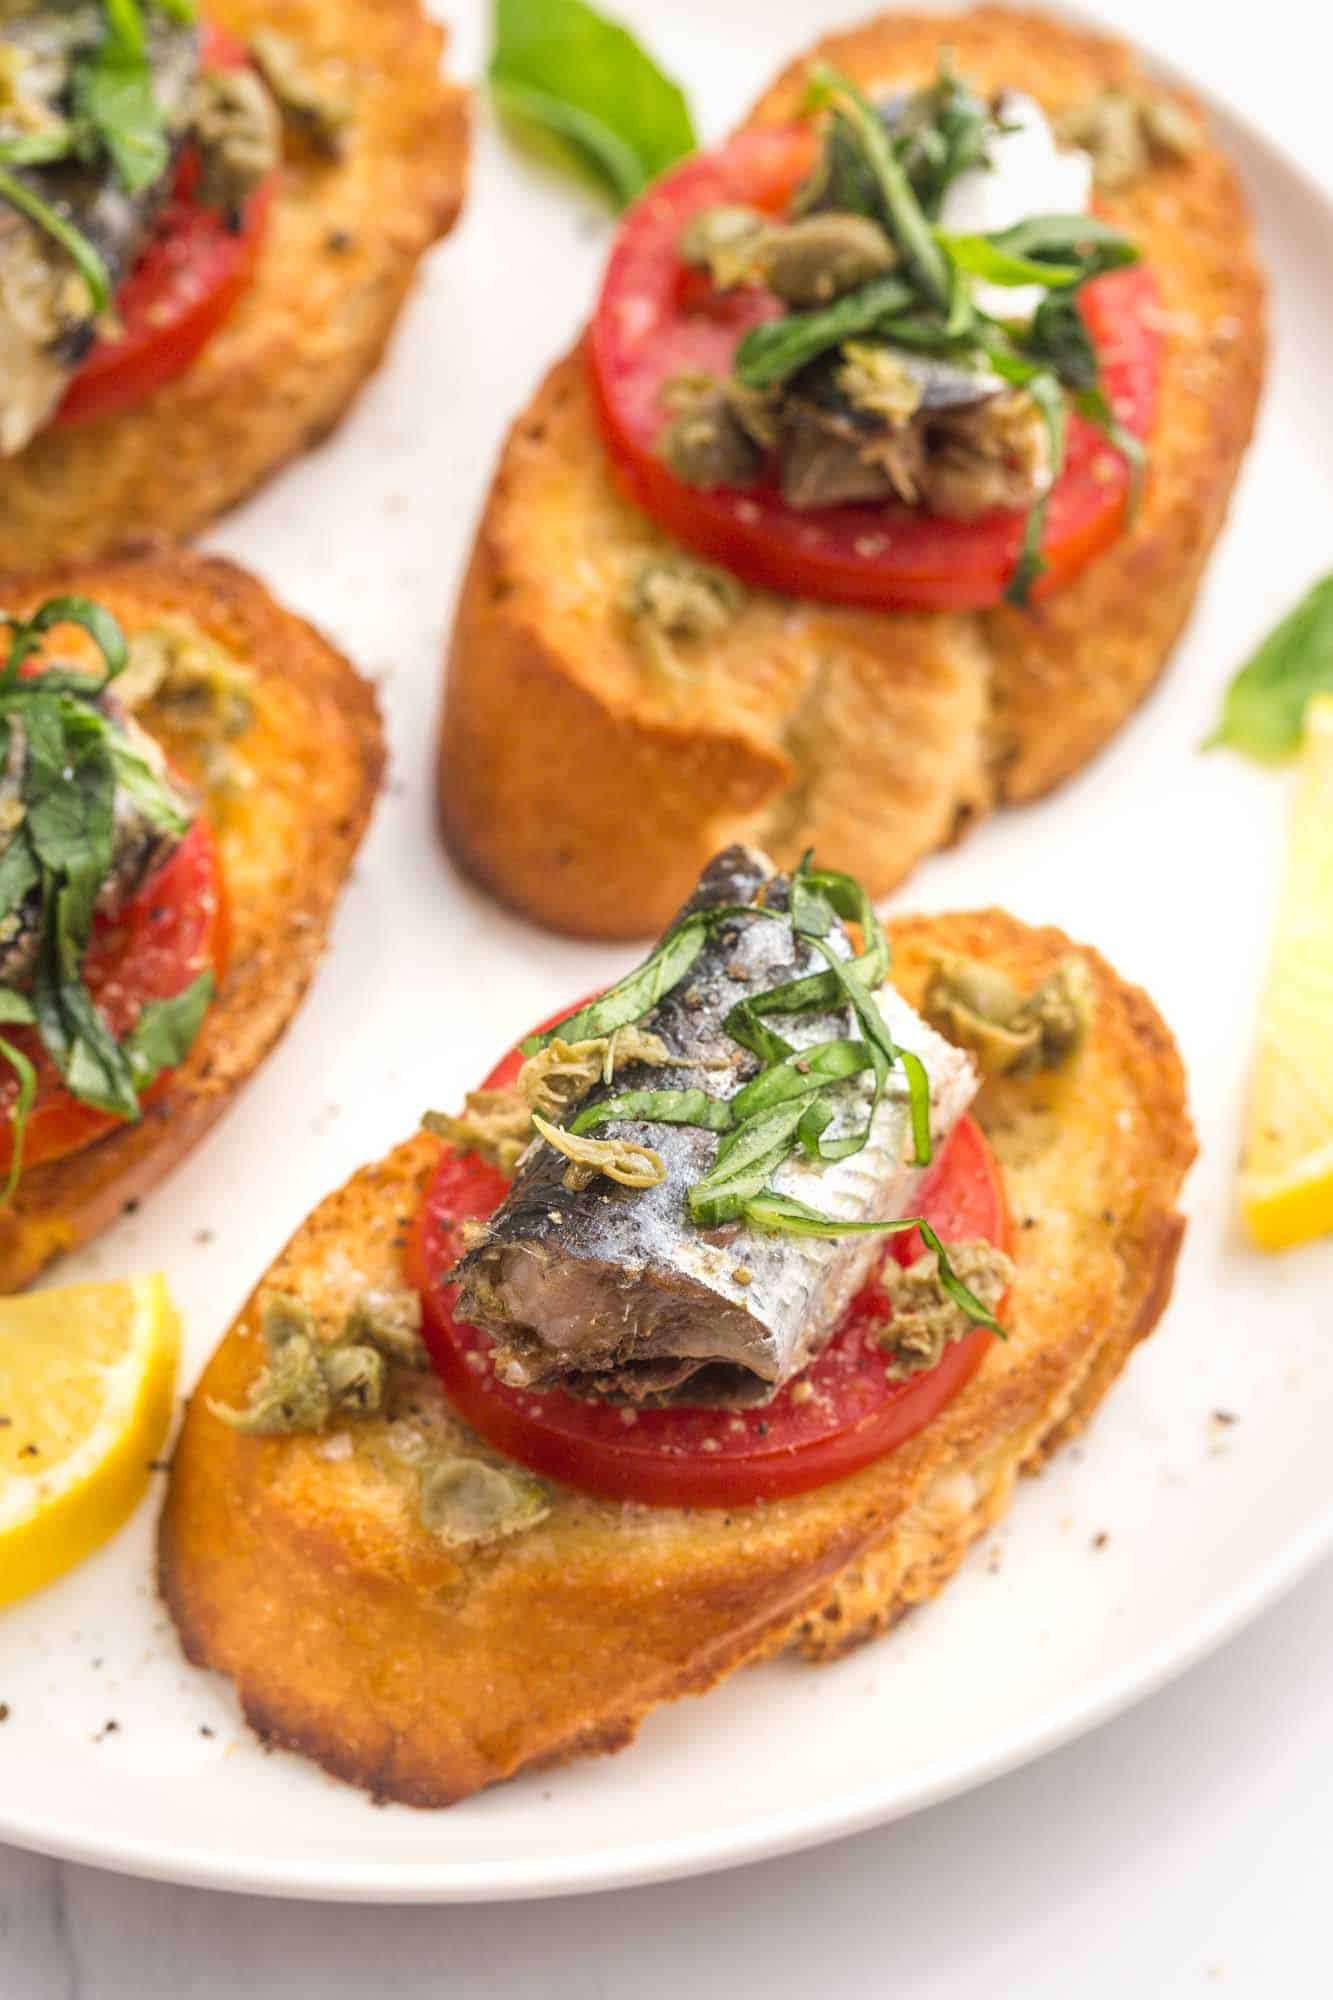 Sardines on Toast with tomato slices, capers, and basil.